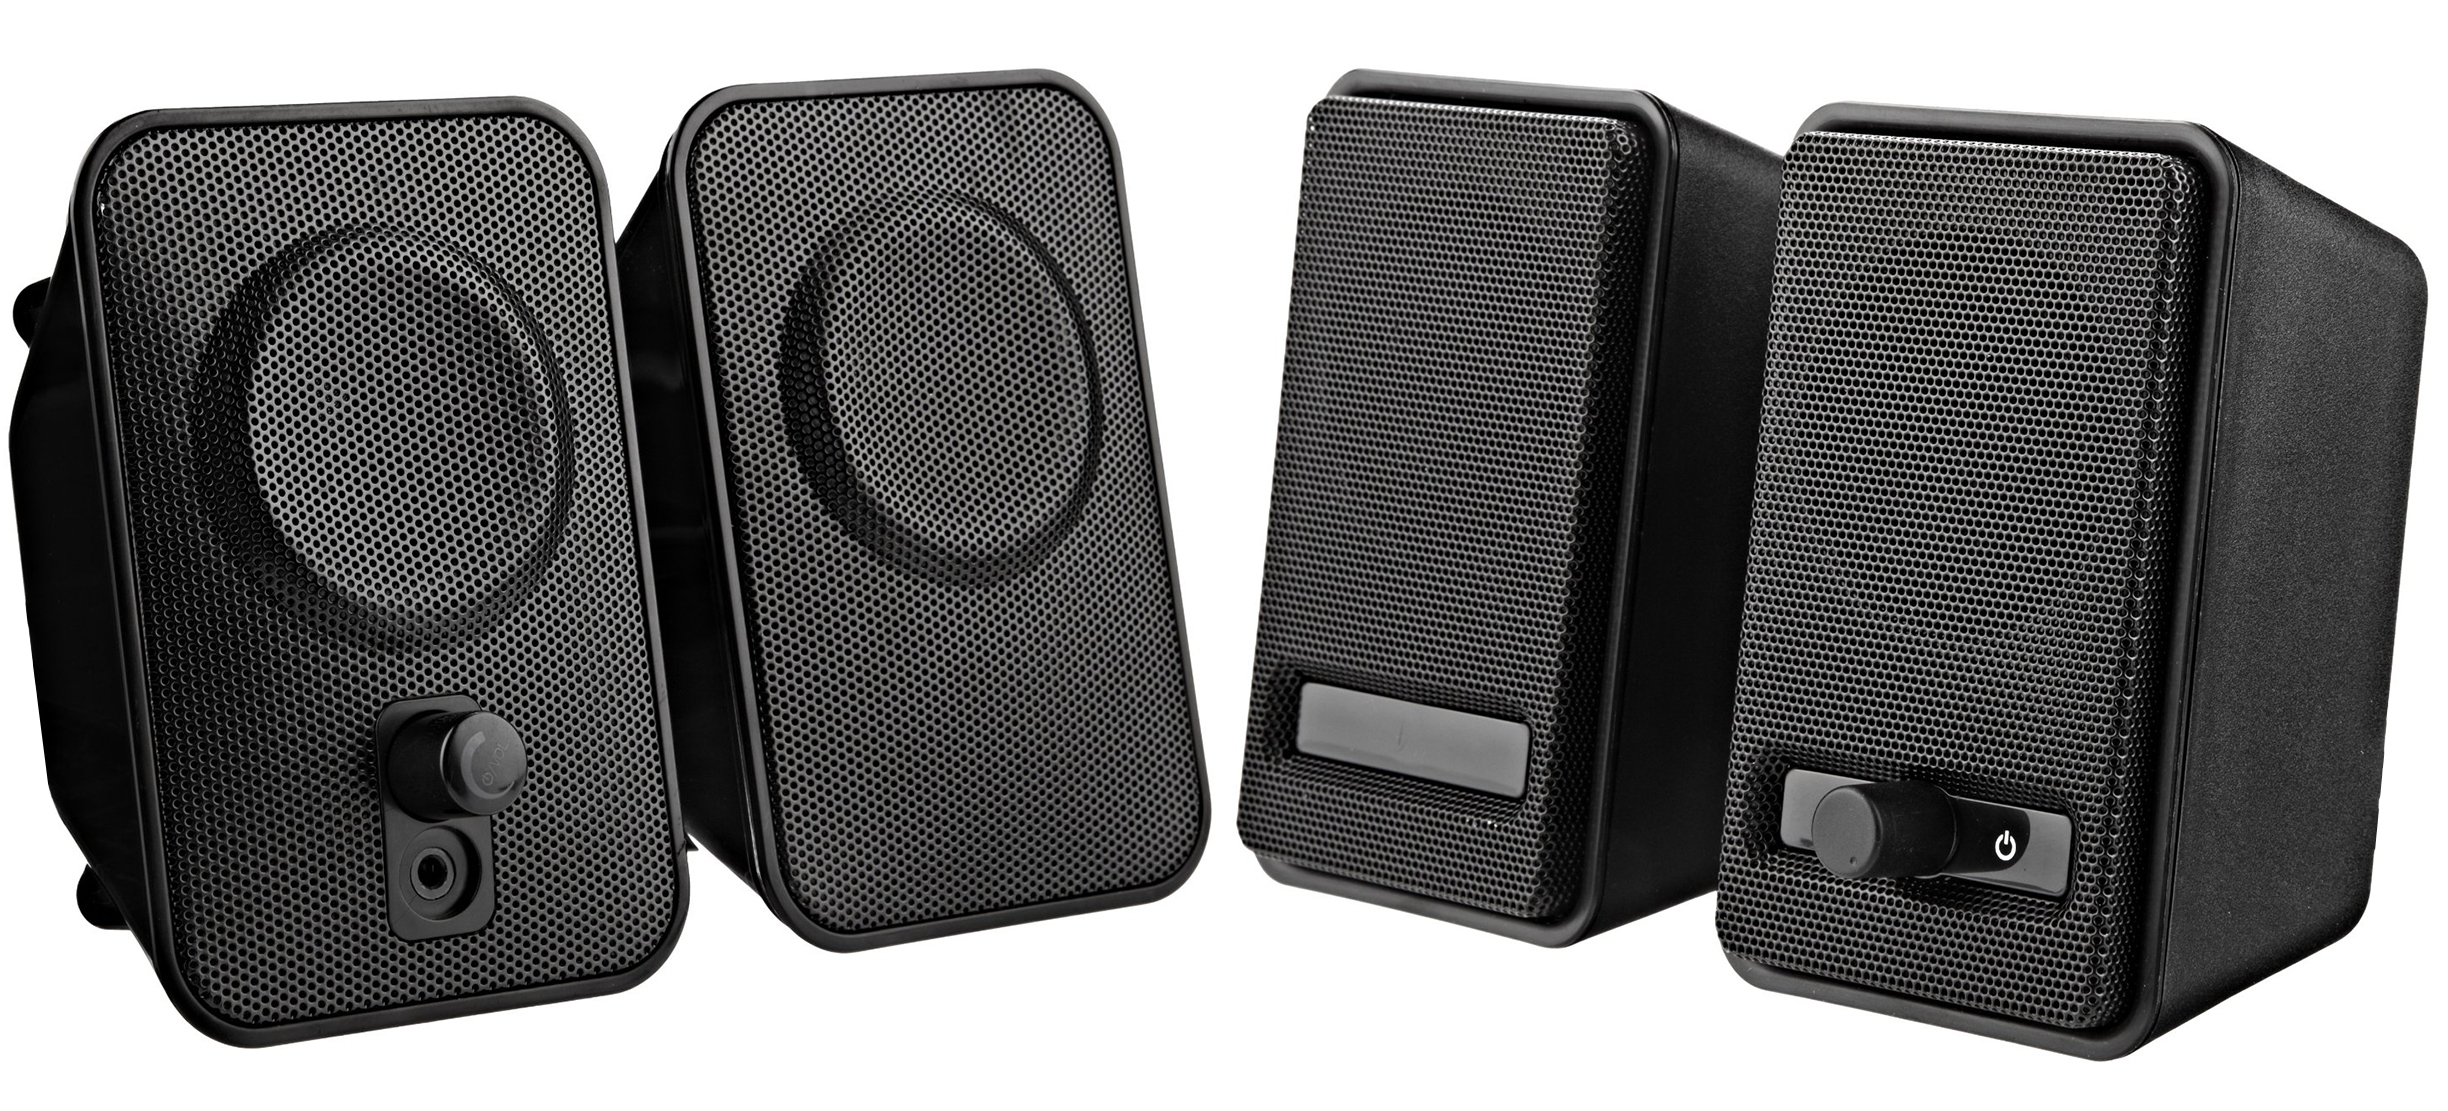 amazonbasics-computer-speakers